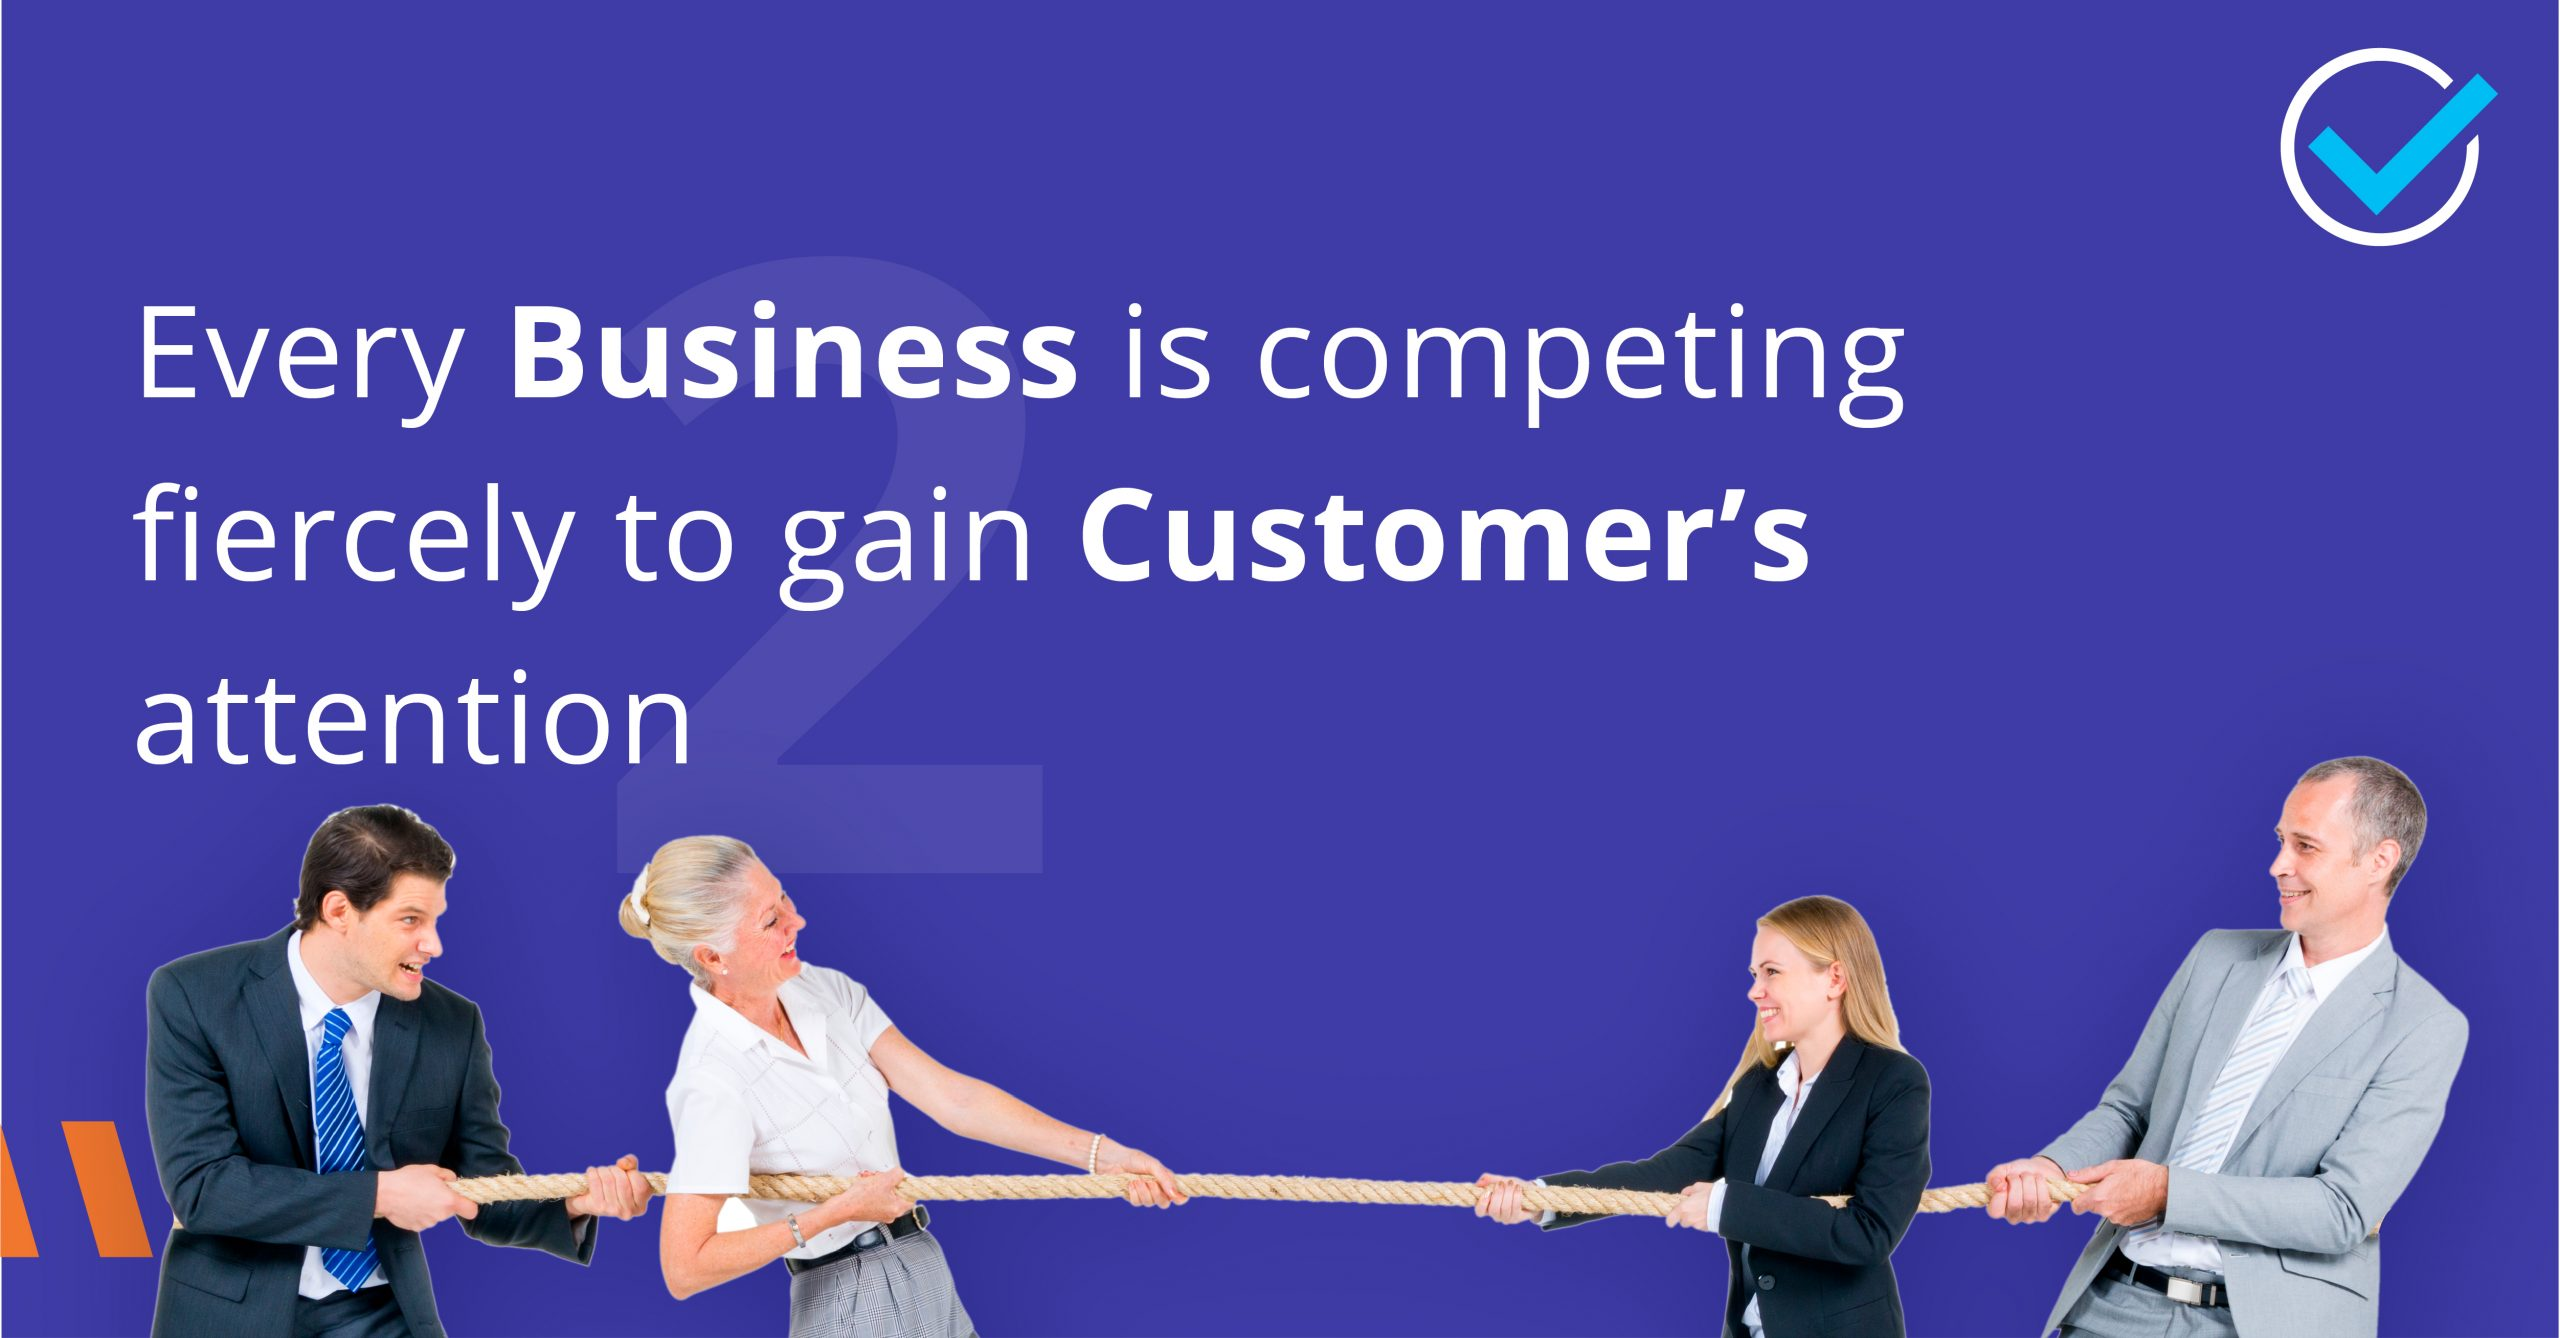 Every Business is competing fiercely to gain the Customer's attention